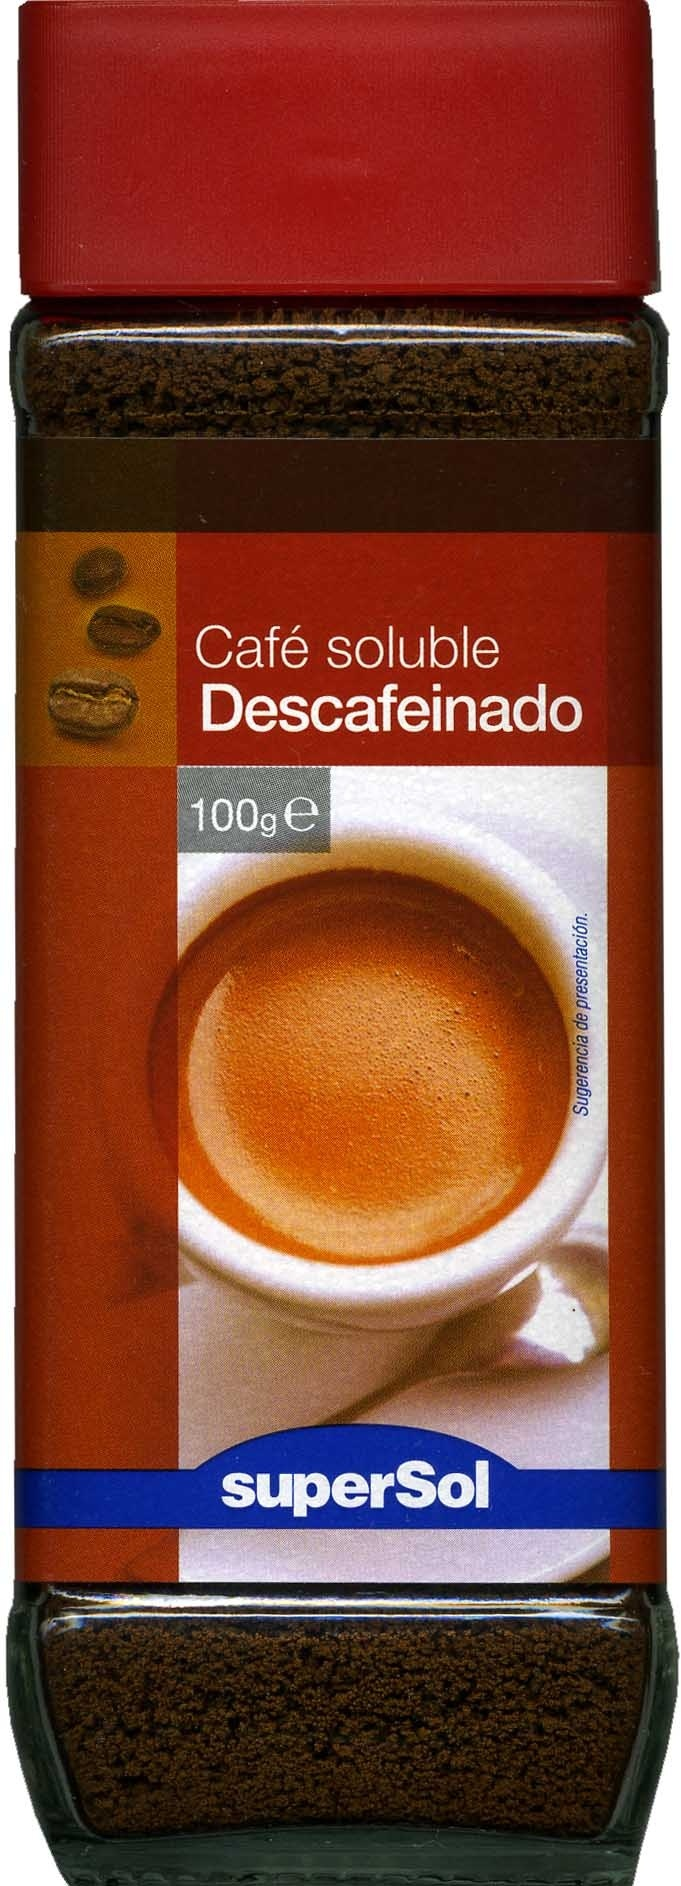 Café soluble descafeinado - Producte